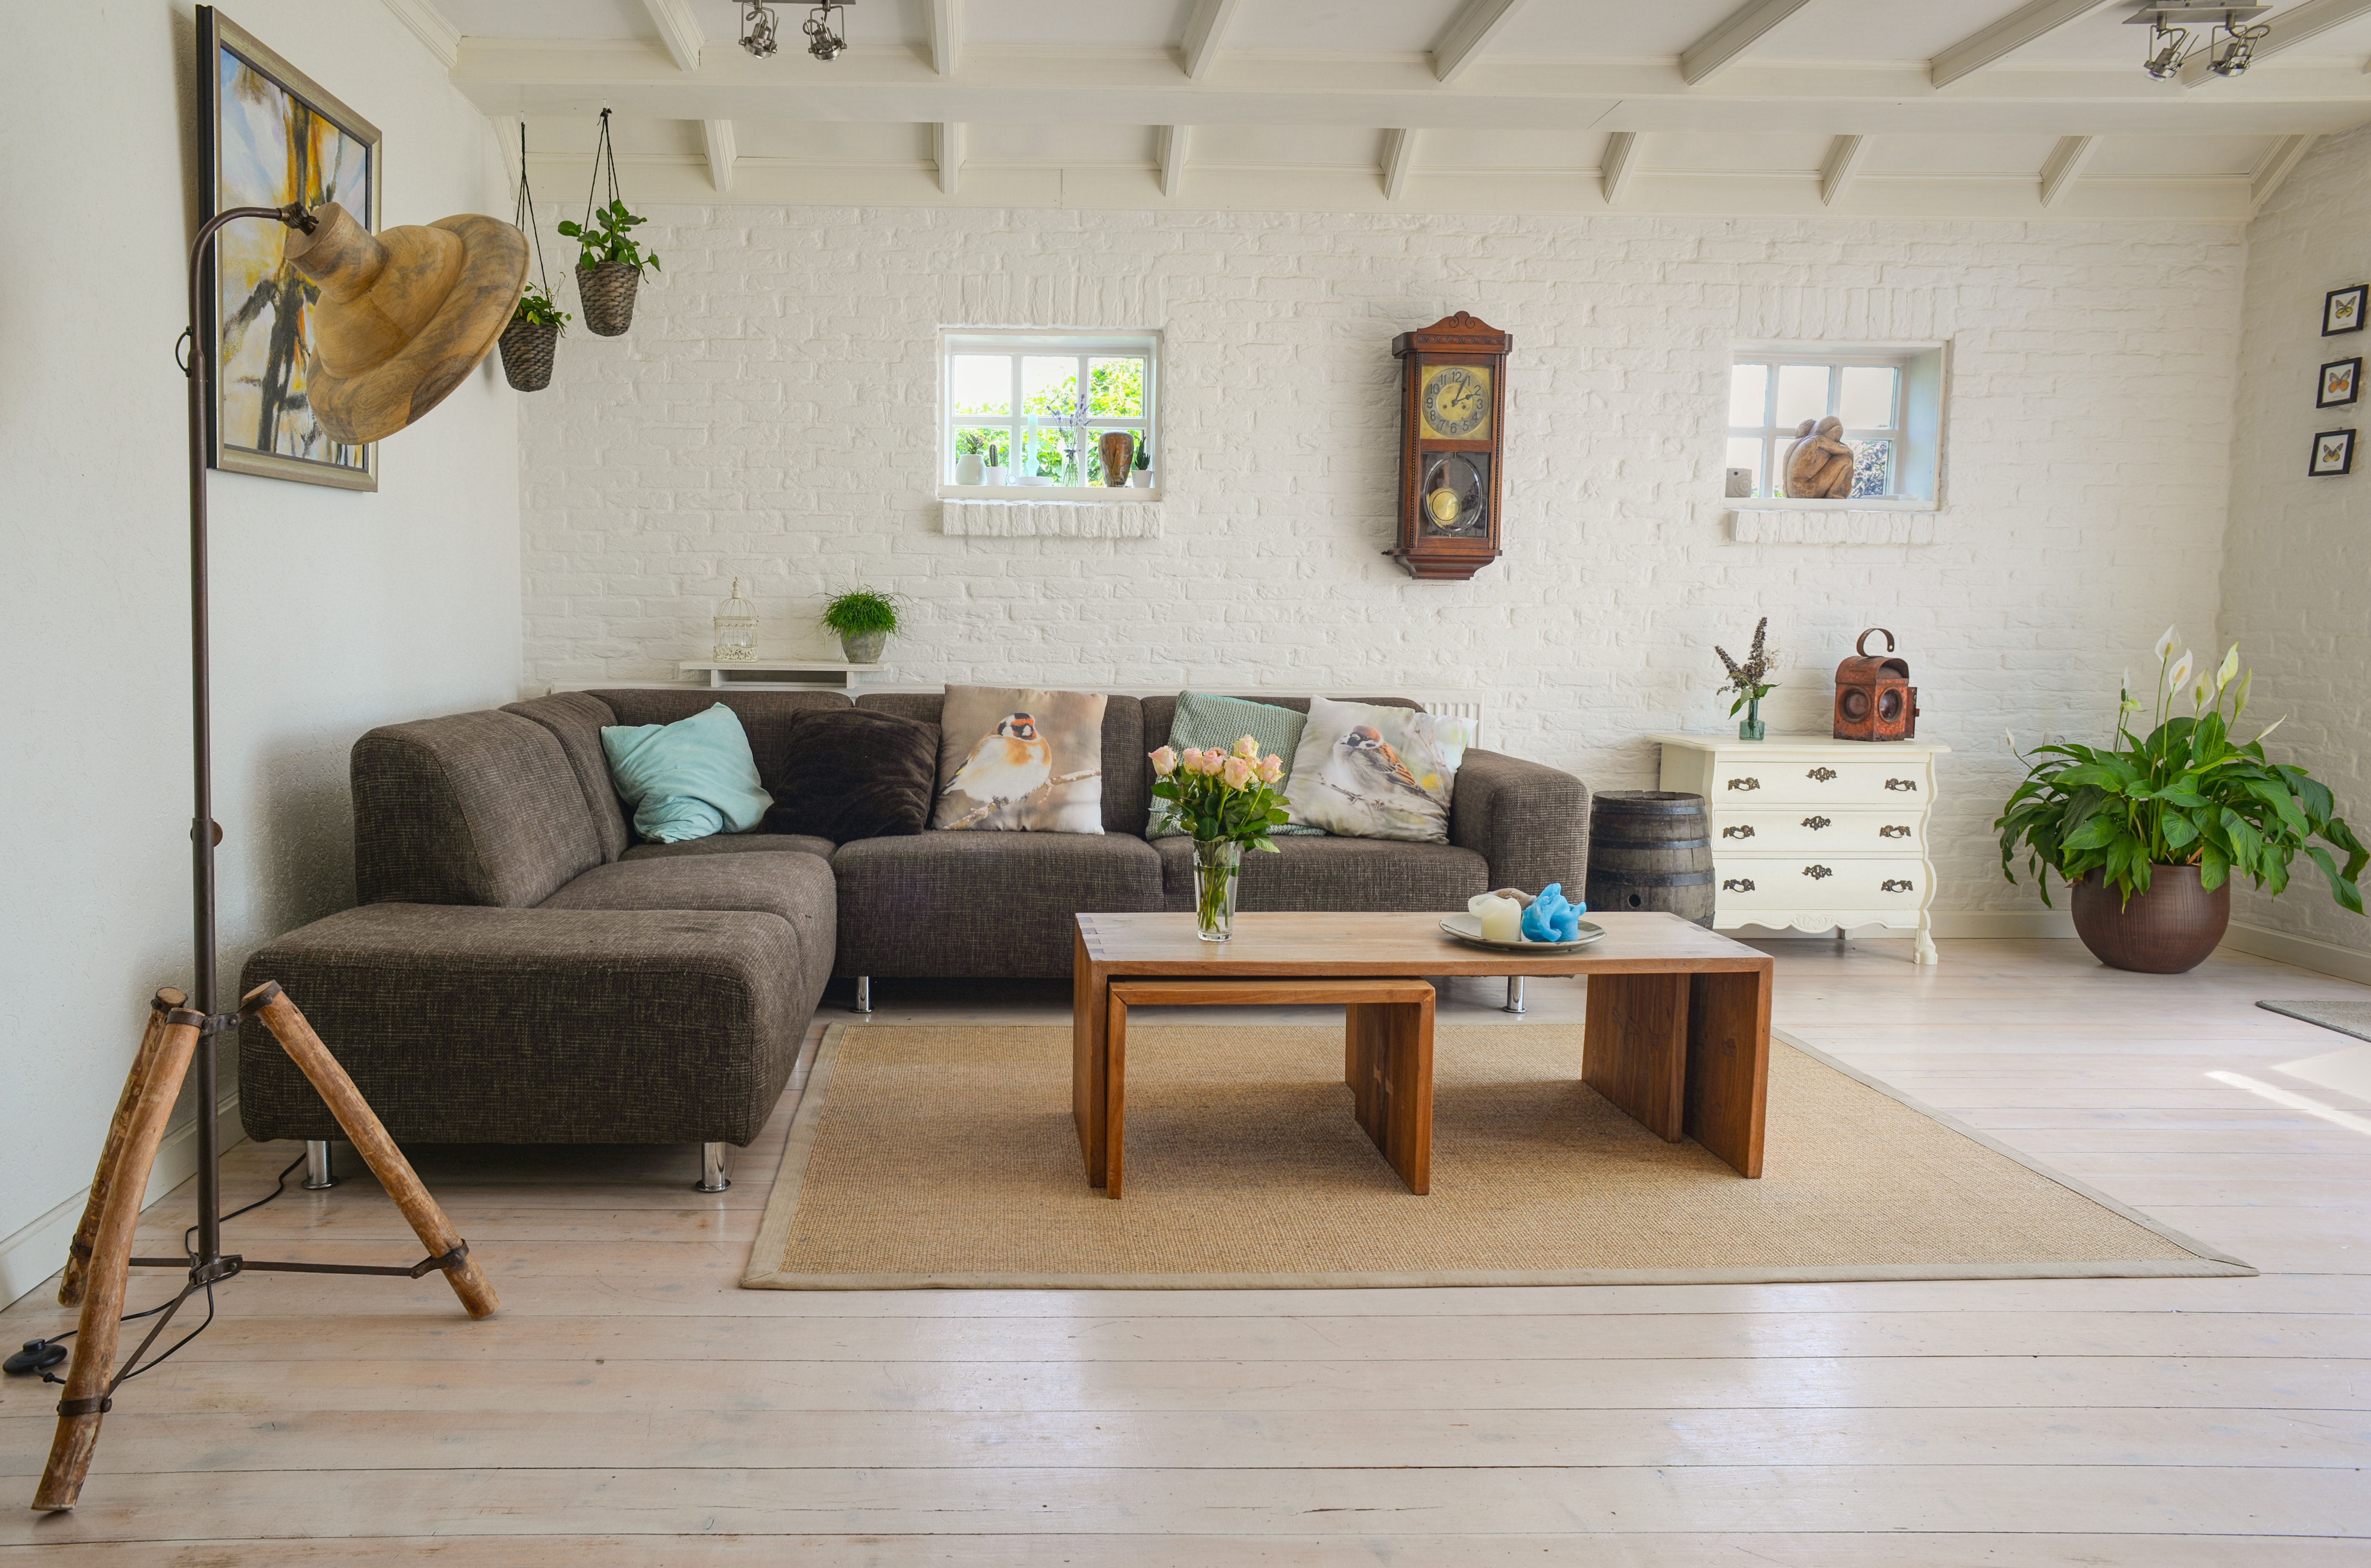 Home staging définition